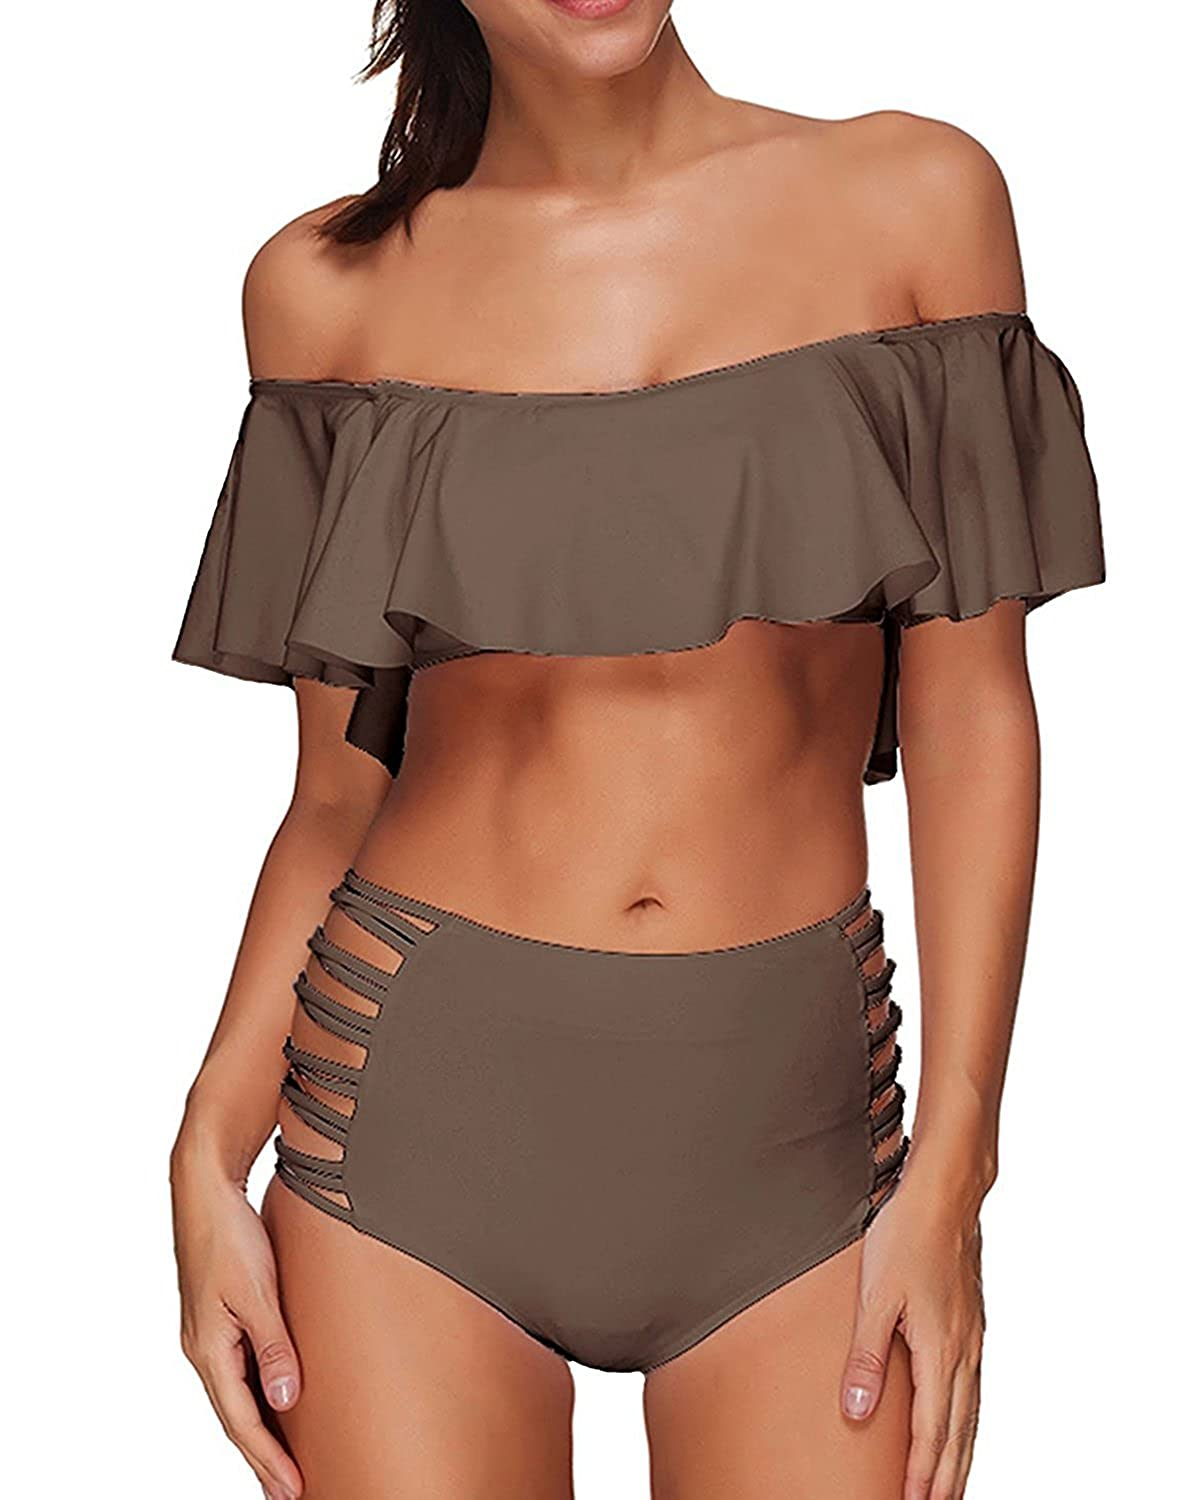 514ee9ef7e800 Features: Crop Ruffled Tube Top with Removable Filmy Soft Push-up Padded  Bra, Empire Waist Cut Out Criss Cross Bandage Hipster Bottom, Strapless Off  ...